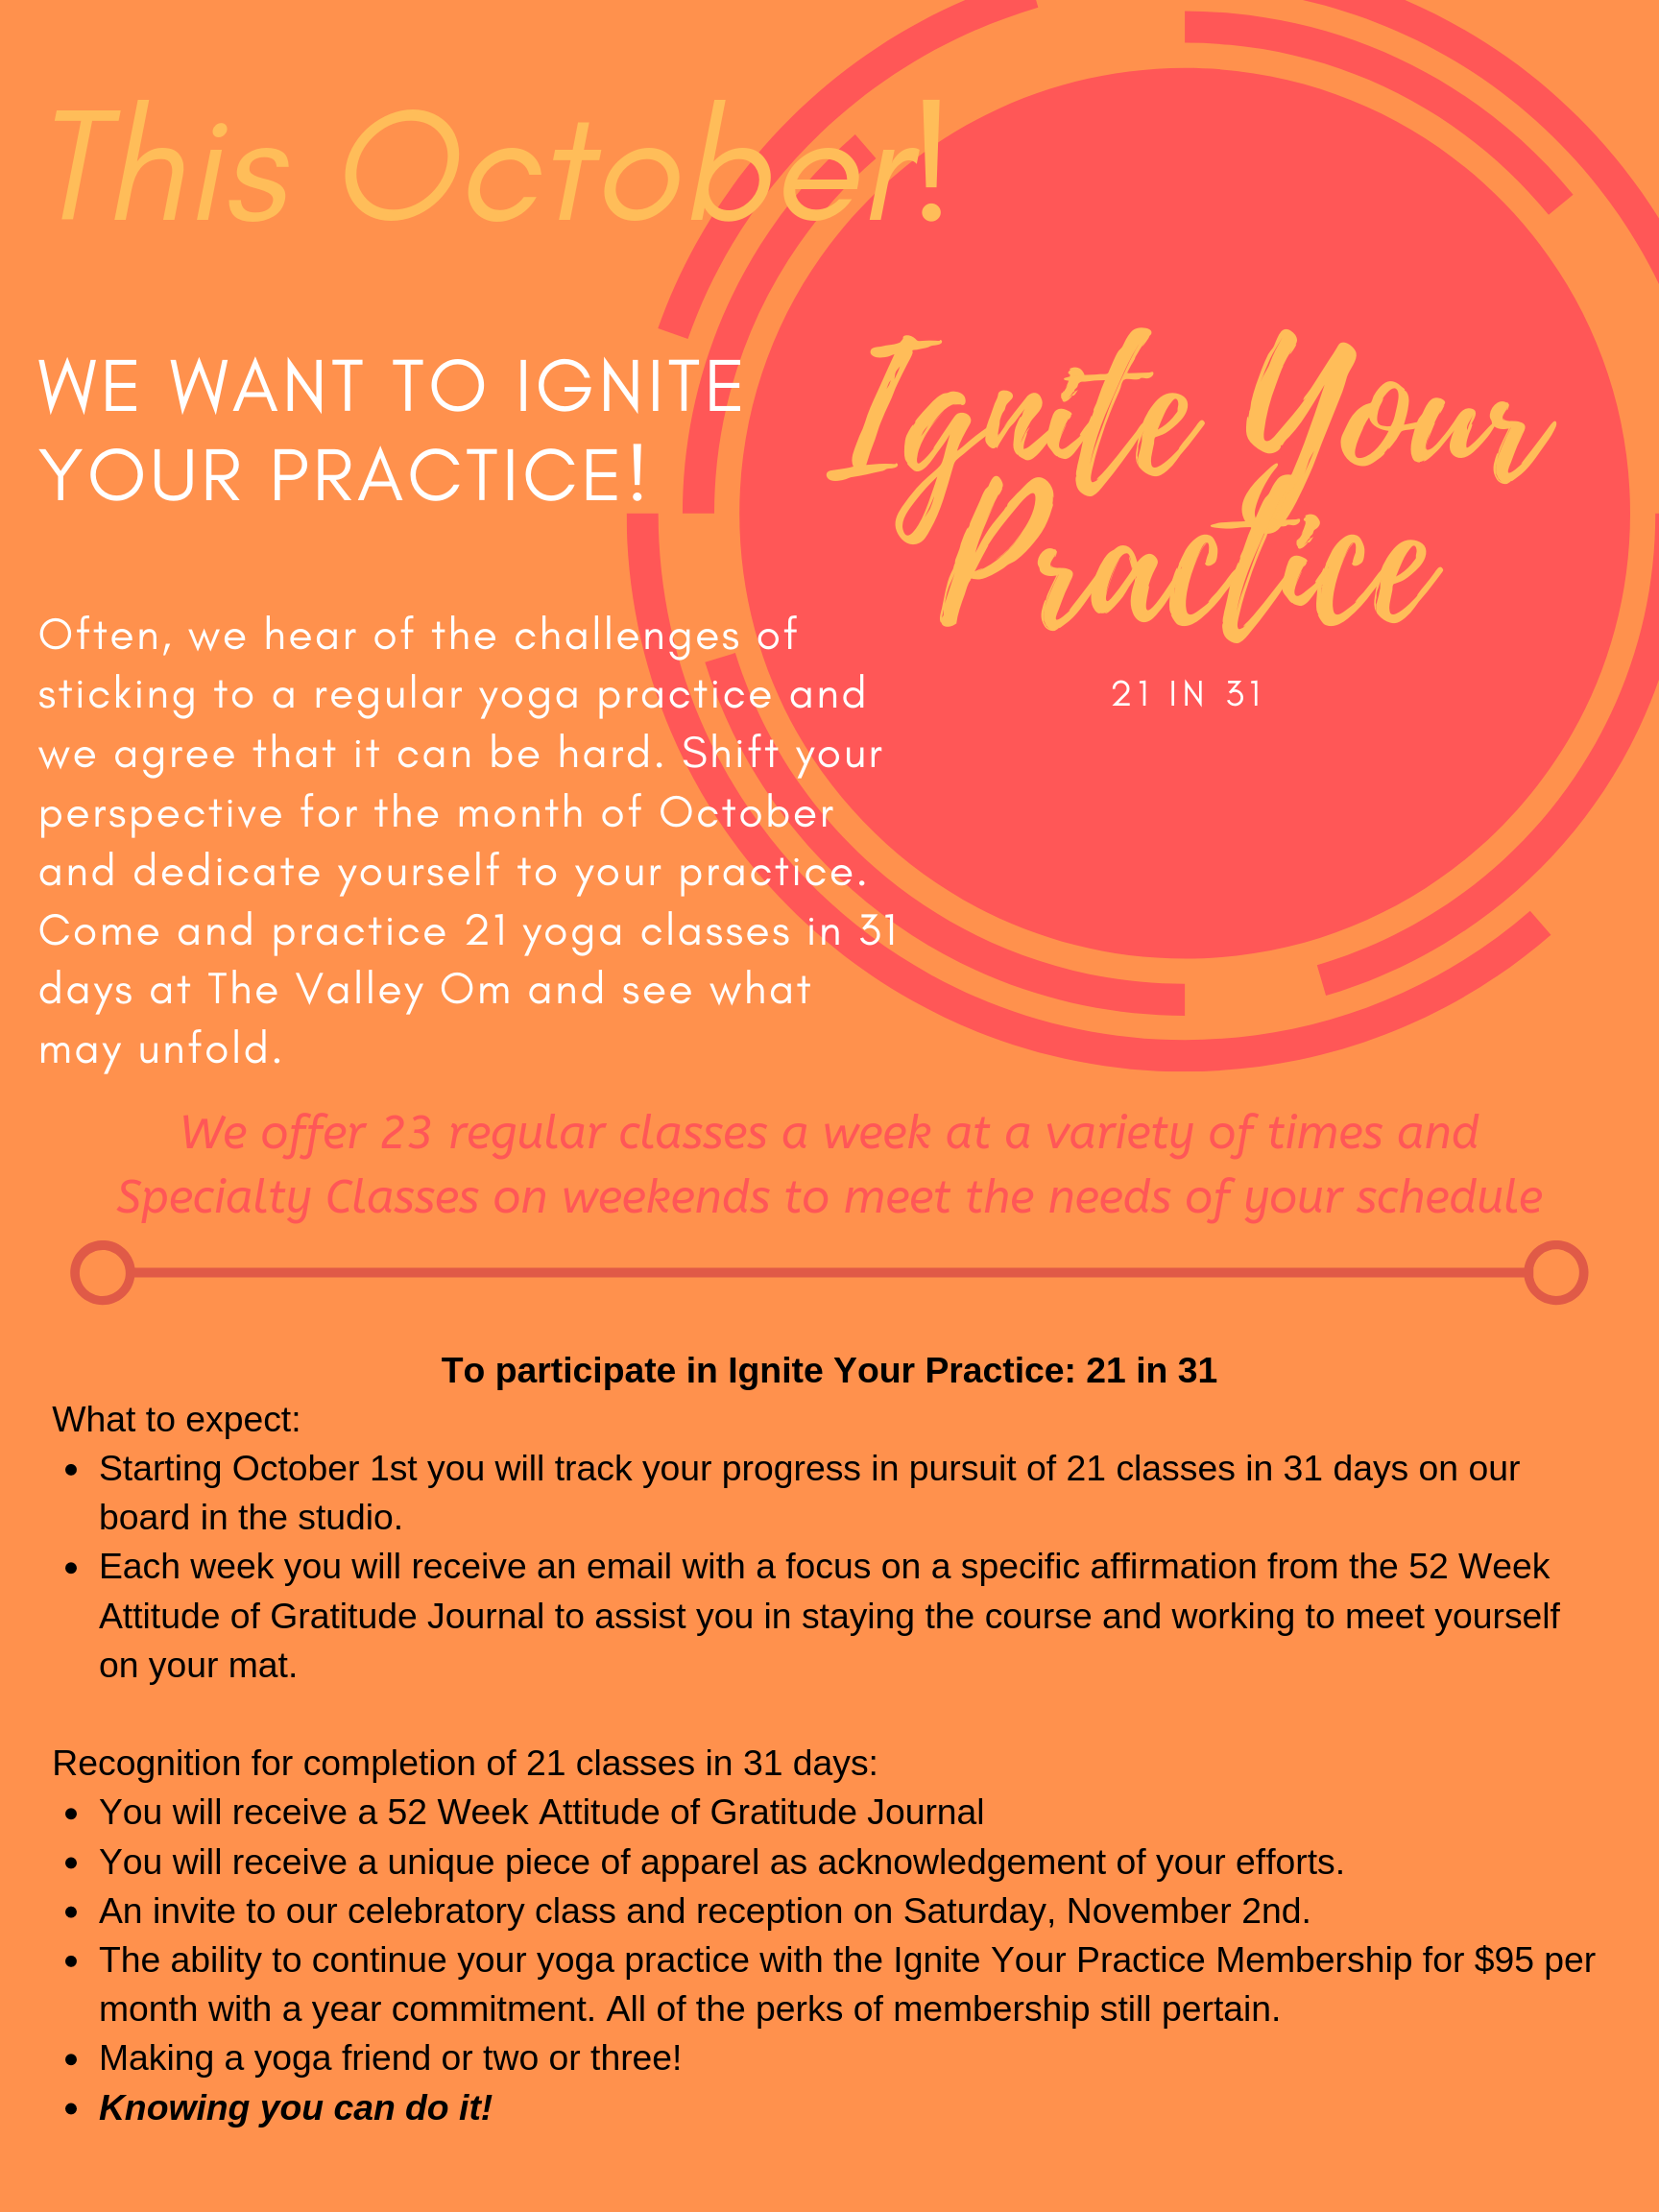 "FAQ:    Do I need to have the Ignite Your Practice Membership to participate in the program?    Yes, you do need to purchase the Ignite your Practice Membership for $105, which not only includes unlimited yoga classes for the month of October, but also includes savings on a massage, regular priced apparel and Specialty Classes. For those who currently have an unlimited monthly membership, simply making up the difference will grant you entry.*see details regarding membership conversion below.      I currently have a class card, what happens with it, if I participate in the Ignite your Practice: 21 in 31?    We will extend the expiry of your class card by 30 days.      If I take a class elsewhere, would it count towards my 21 classes?    To participate in the Ignite Your Practice: 21 in 31, all 21 classes must be taken in studio at The Valley Om.      I haven't come to yoga in a really long time. Is this for me?    Absolutely this is for you if you are willing and wanting to commit to the practice and learn.      How do I figure out which classes are right for me?    We offer 23 regular classes a week at a variety of times to meet the needs of your schedule, which include:    -Daily Practice:  Move into your day with a full spectrum flow designed to awaken your body, focus your mind and supercharge your energy.   -Yoga:  These classes are open to all levels of experience and cater to those who might be seeking to focus on fundamentals of a yoga asana (posture) practice as the pace is somewhat slower and the transitions from one posture to another are more simplified. You will learn how to utilize props and choose the proper variations of postures to suit your needs and goals. Just coming back to your practice? This is a perfect place to start.   -Yoga Flow:  You will be guided through a full spectrum flow class at a moderate pace to explore the available ranges of motion in your unique body and experience. Your teacher will offer you traditional postures, variations and prop usage while you follow the guidance of your breath and find expressions of the asanas to best satisfy your needs and goals.   - Yoga + Nidra:  Yoga class that incorporates yoga nidra; which is a practice of supreme relaxation wherein you will enjoy deeply restorative and cozy postures while being guided through meditative visualizations and mindfulness cues to initiate a strong and lasting relaxation response in your nervous system and whole being.   -Yin:  Similar to Restorative Yoga in that it is a more passive practice and highly therapeutic and relaxing at many levels. You will be guided into postures with precision, props and clear options to support your needs. Postures will be held for longer stretches of time to effect positive change to the connective tissues. As such, Yin Yoga is a great complement to any active lifestyle and all levels are welcome.   -Specialty Classes : Bridge the gap between regular classes and workshops and are a way for us to provide you more in-depth knowledge and focused practice. Each Specialty class feature a unique field of expertise, reflective of the teacher's ""specialty"" - interest, education, and experience. You will learn more without having to devote your entire day to it or breaking the bank! These classes range from 90 minutes to 2 hours and are held on weekends once or twice per month and range in price from $25 - $45.   -I'd Rather Be in Savasana:  This Specialty Restorative Yoga Class can reduce the discomfort of aches in the body while simultaneously calming the mind. Lounging on supportive piles of bolsters and blankets melts away tightness in the muscles and sets up the ideal circumstances for the nervous system to let go. Open to any level of practitioner, includes reiki (energy healing work) as well as breath awareness, and concludes with a quartz crystal bowl meditation.      *    If you already have a monthly membership with a year contract and would like to take advantage of the Ignite Your Practice Membership we can apply this to the remainder of the year (Nov '19 - Nov '20) when your current contract ends. For example if you have a Founding Membership that started on June 1, 2019, you will continue on that (with the exception of the $20 difference to participate Ignite Your Practice in October) until the contract is up at the end of May 2020, at which time Ignite Your Practice Membership would kick in and secure the rate of $95 until November 2020."